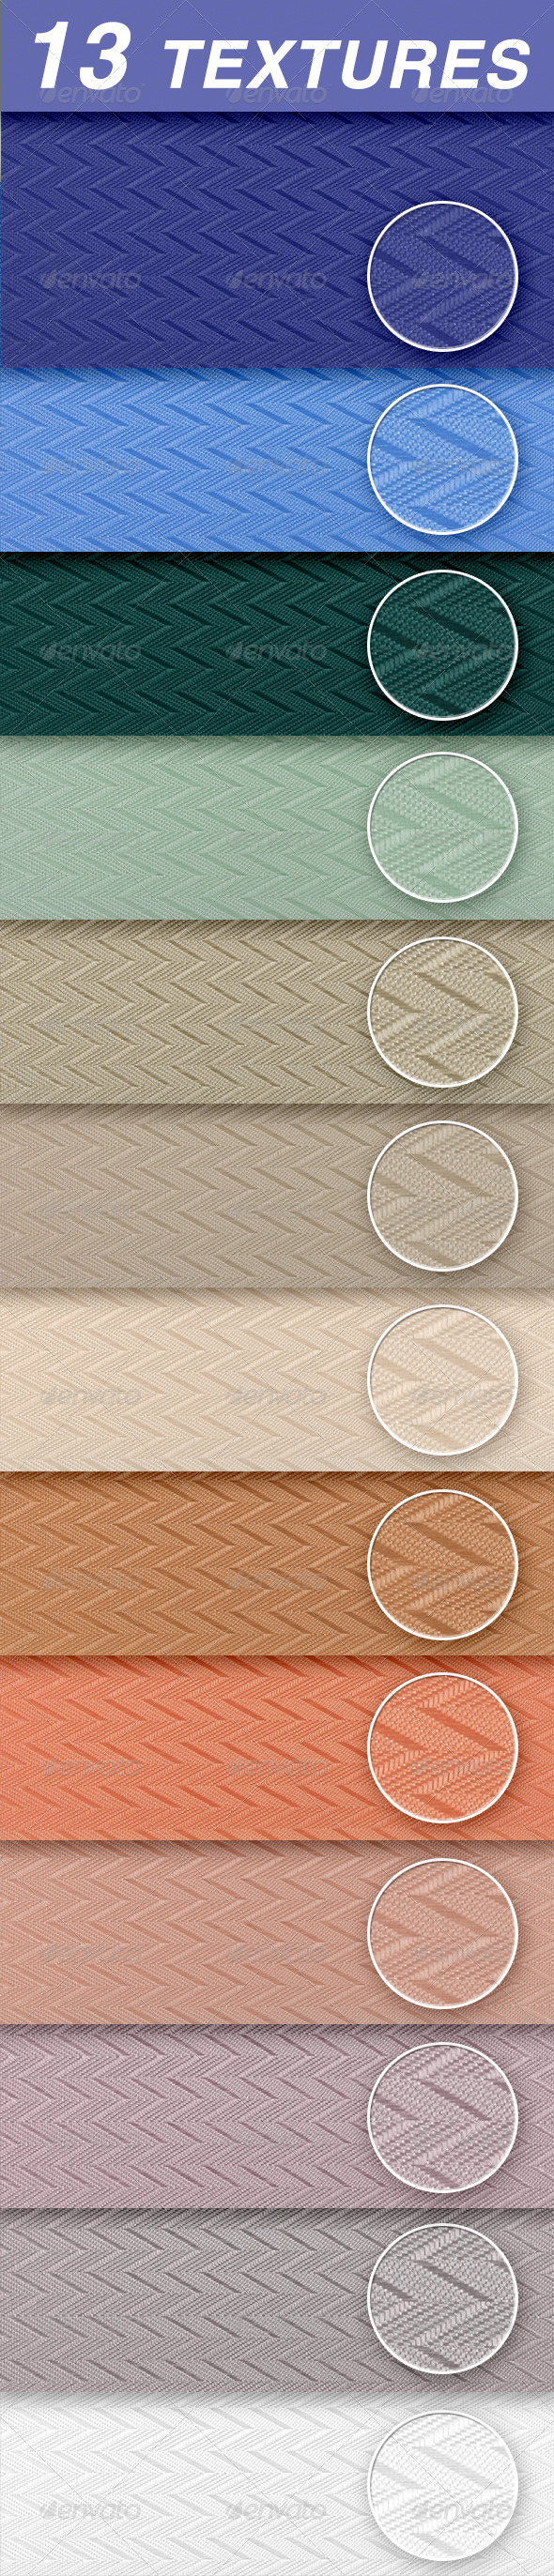 fabric  with zig-zag pattern - Fabric Textures